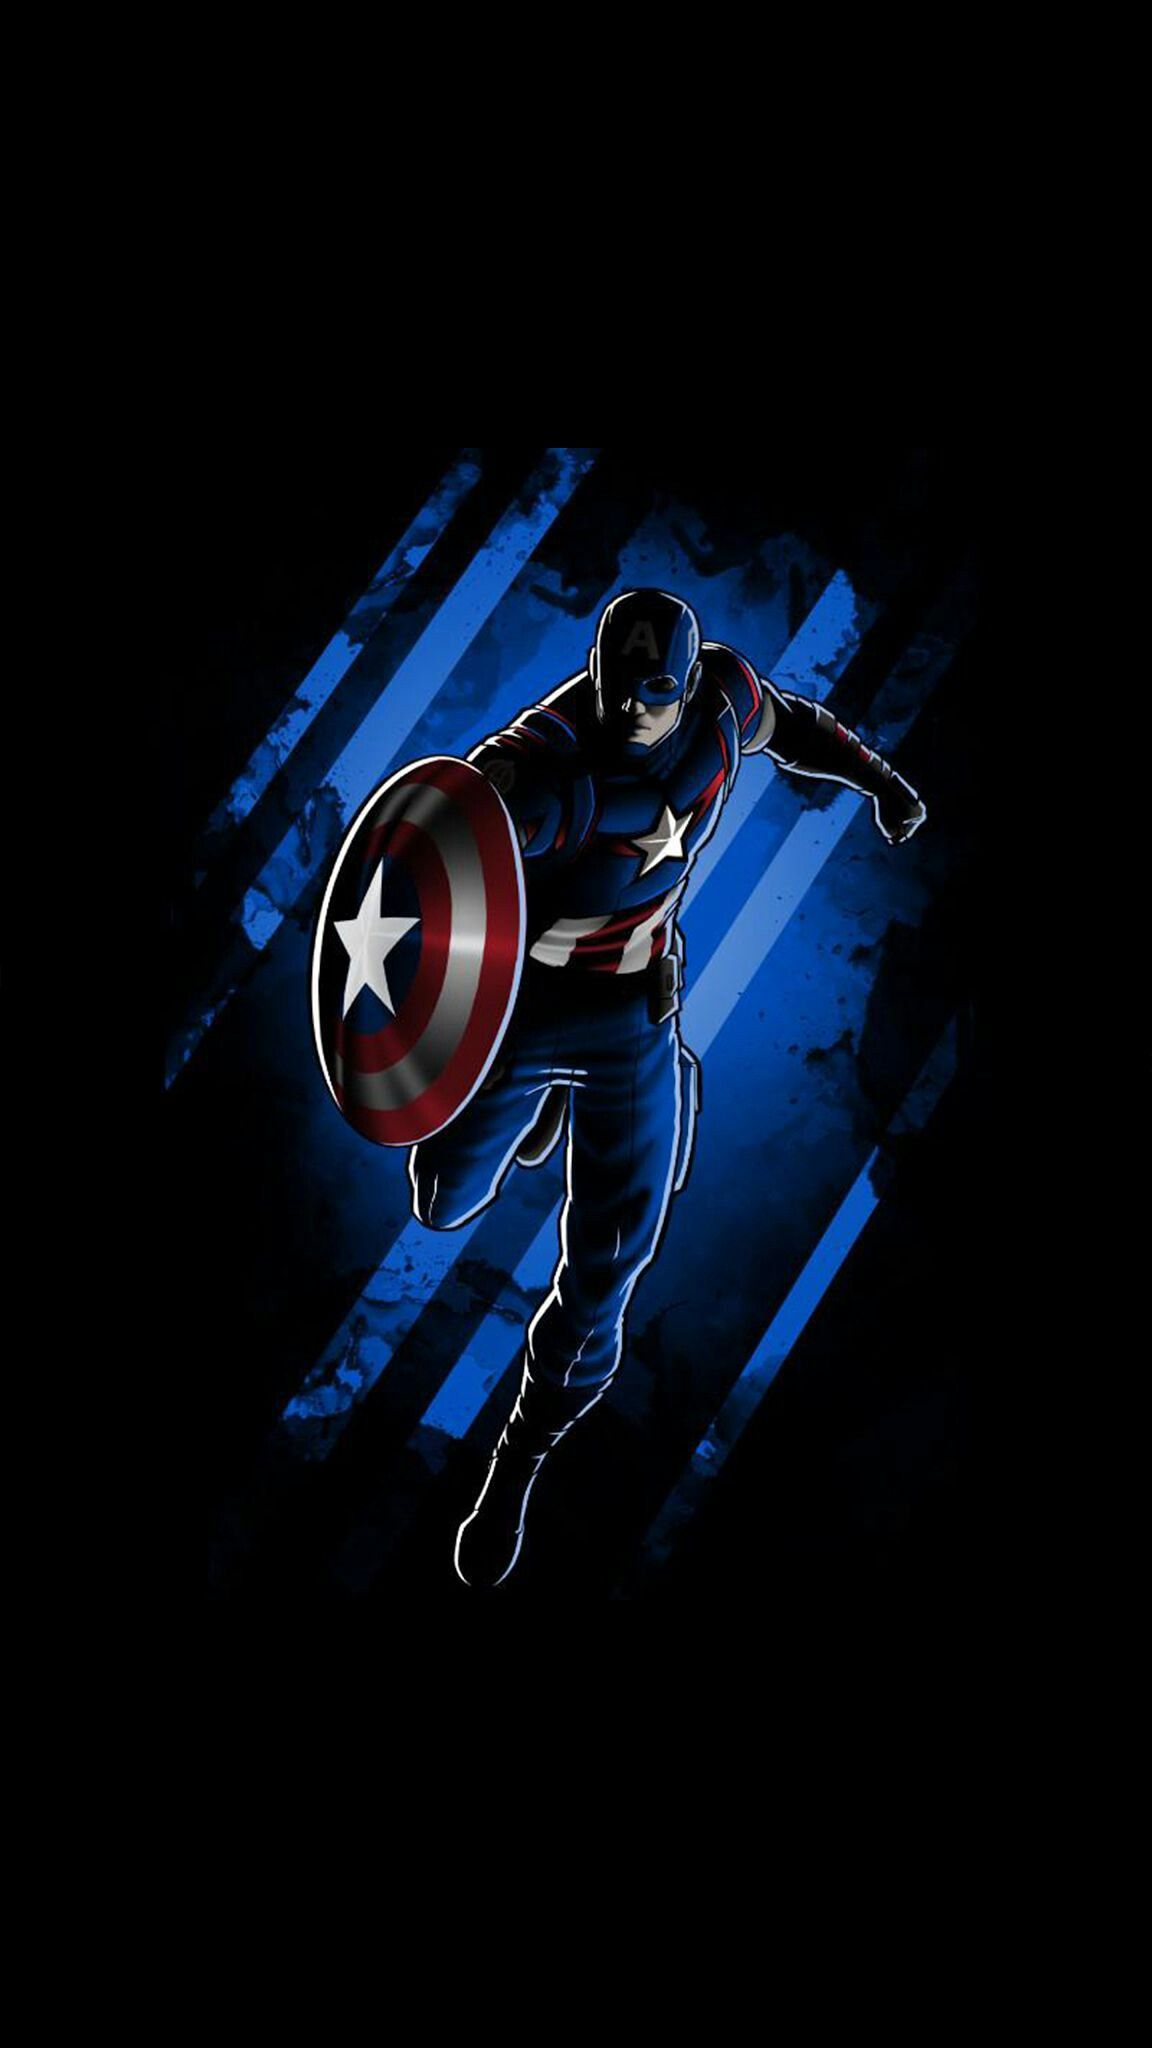 Captain America Dark Minimal Background Iphone Wallpaper Captain America Wallpaper Joker Iphone Wallpaper Marvel Wallpaper